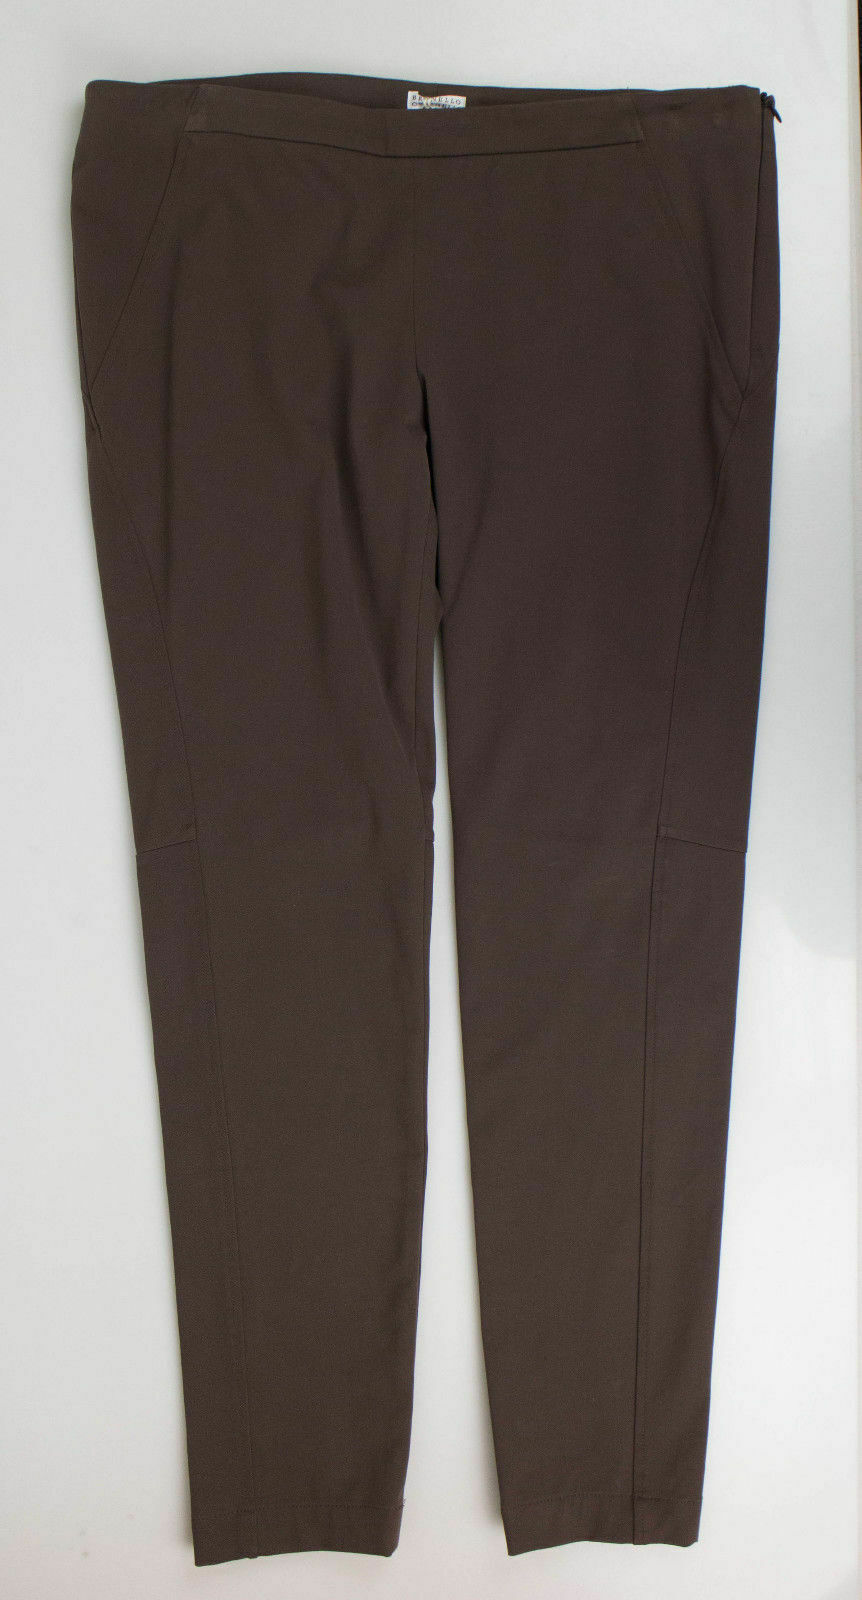 New BRUNELLO CUCINELLI Women's Brown Cotton Blend Dress Pants Size 12 48